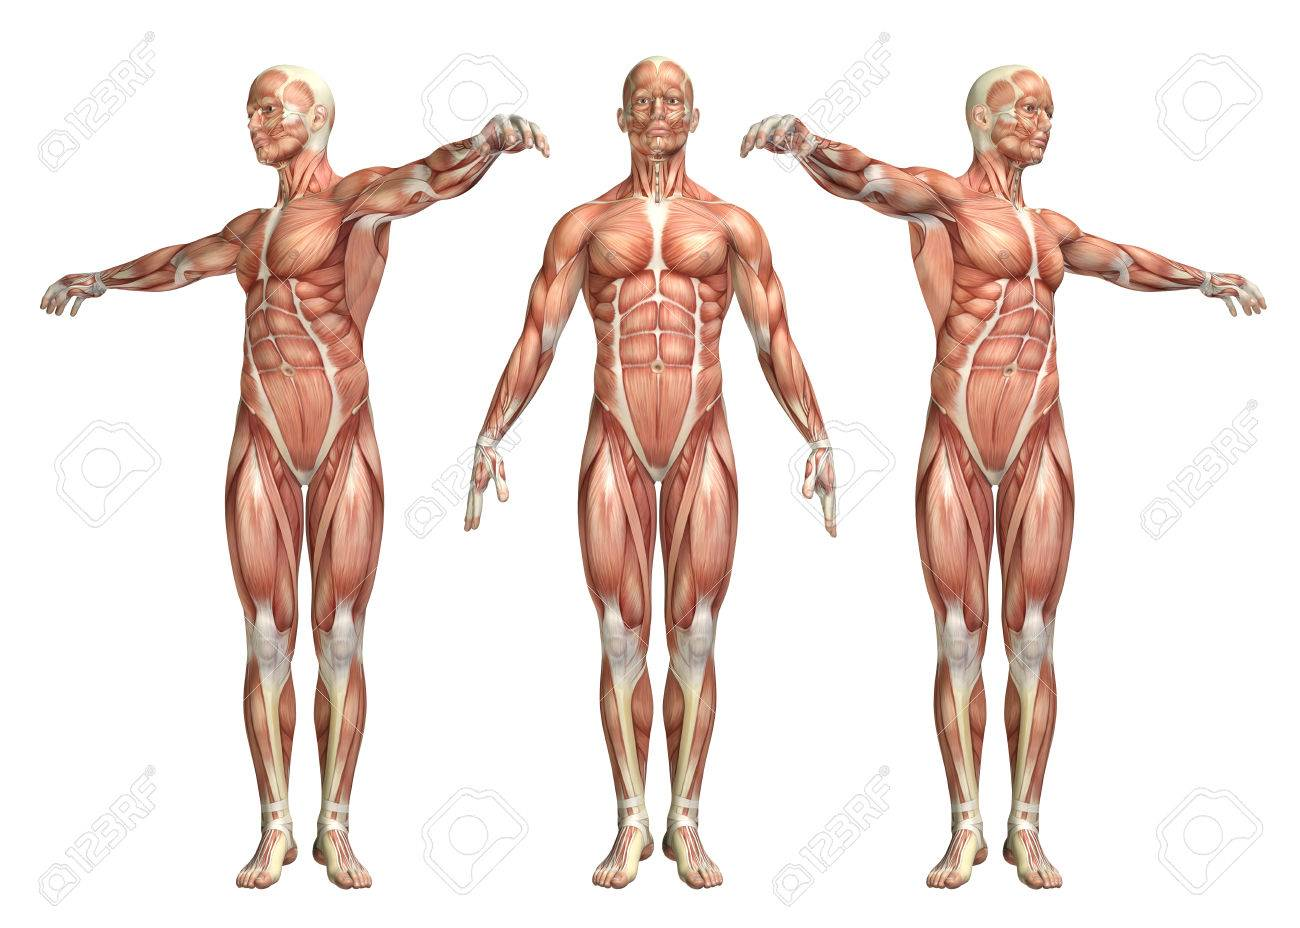 3D Render Of A Medical Figure Showing Trunk Rotation Stock Photo ...